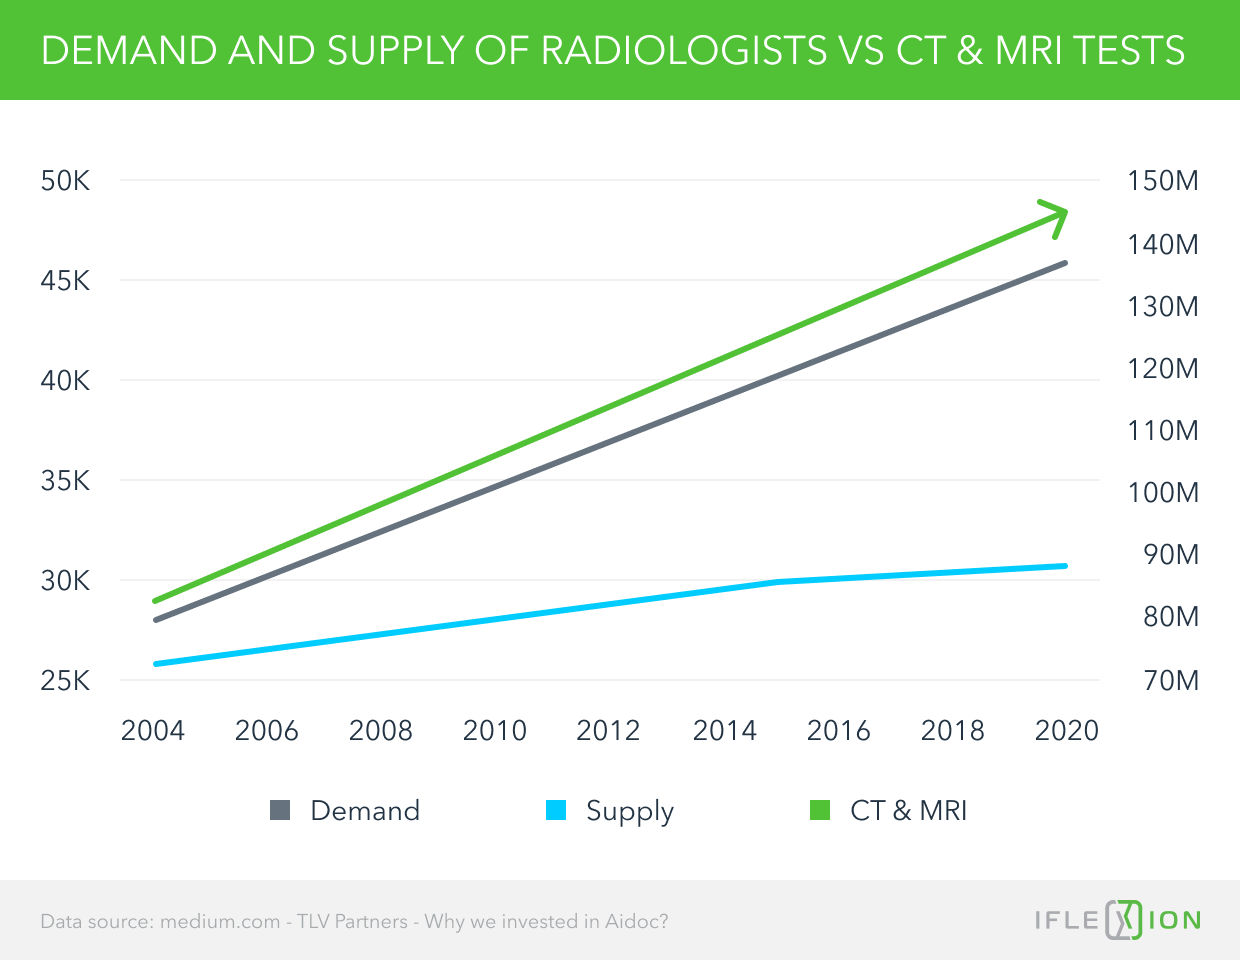 Demand and Supply of Radiologists VS CT & MRI Tests